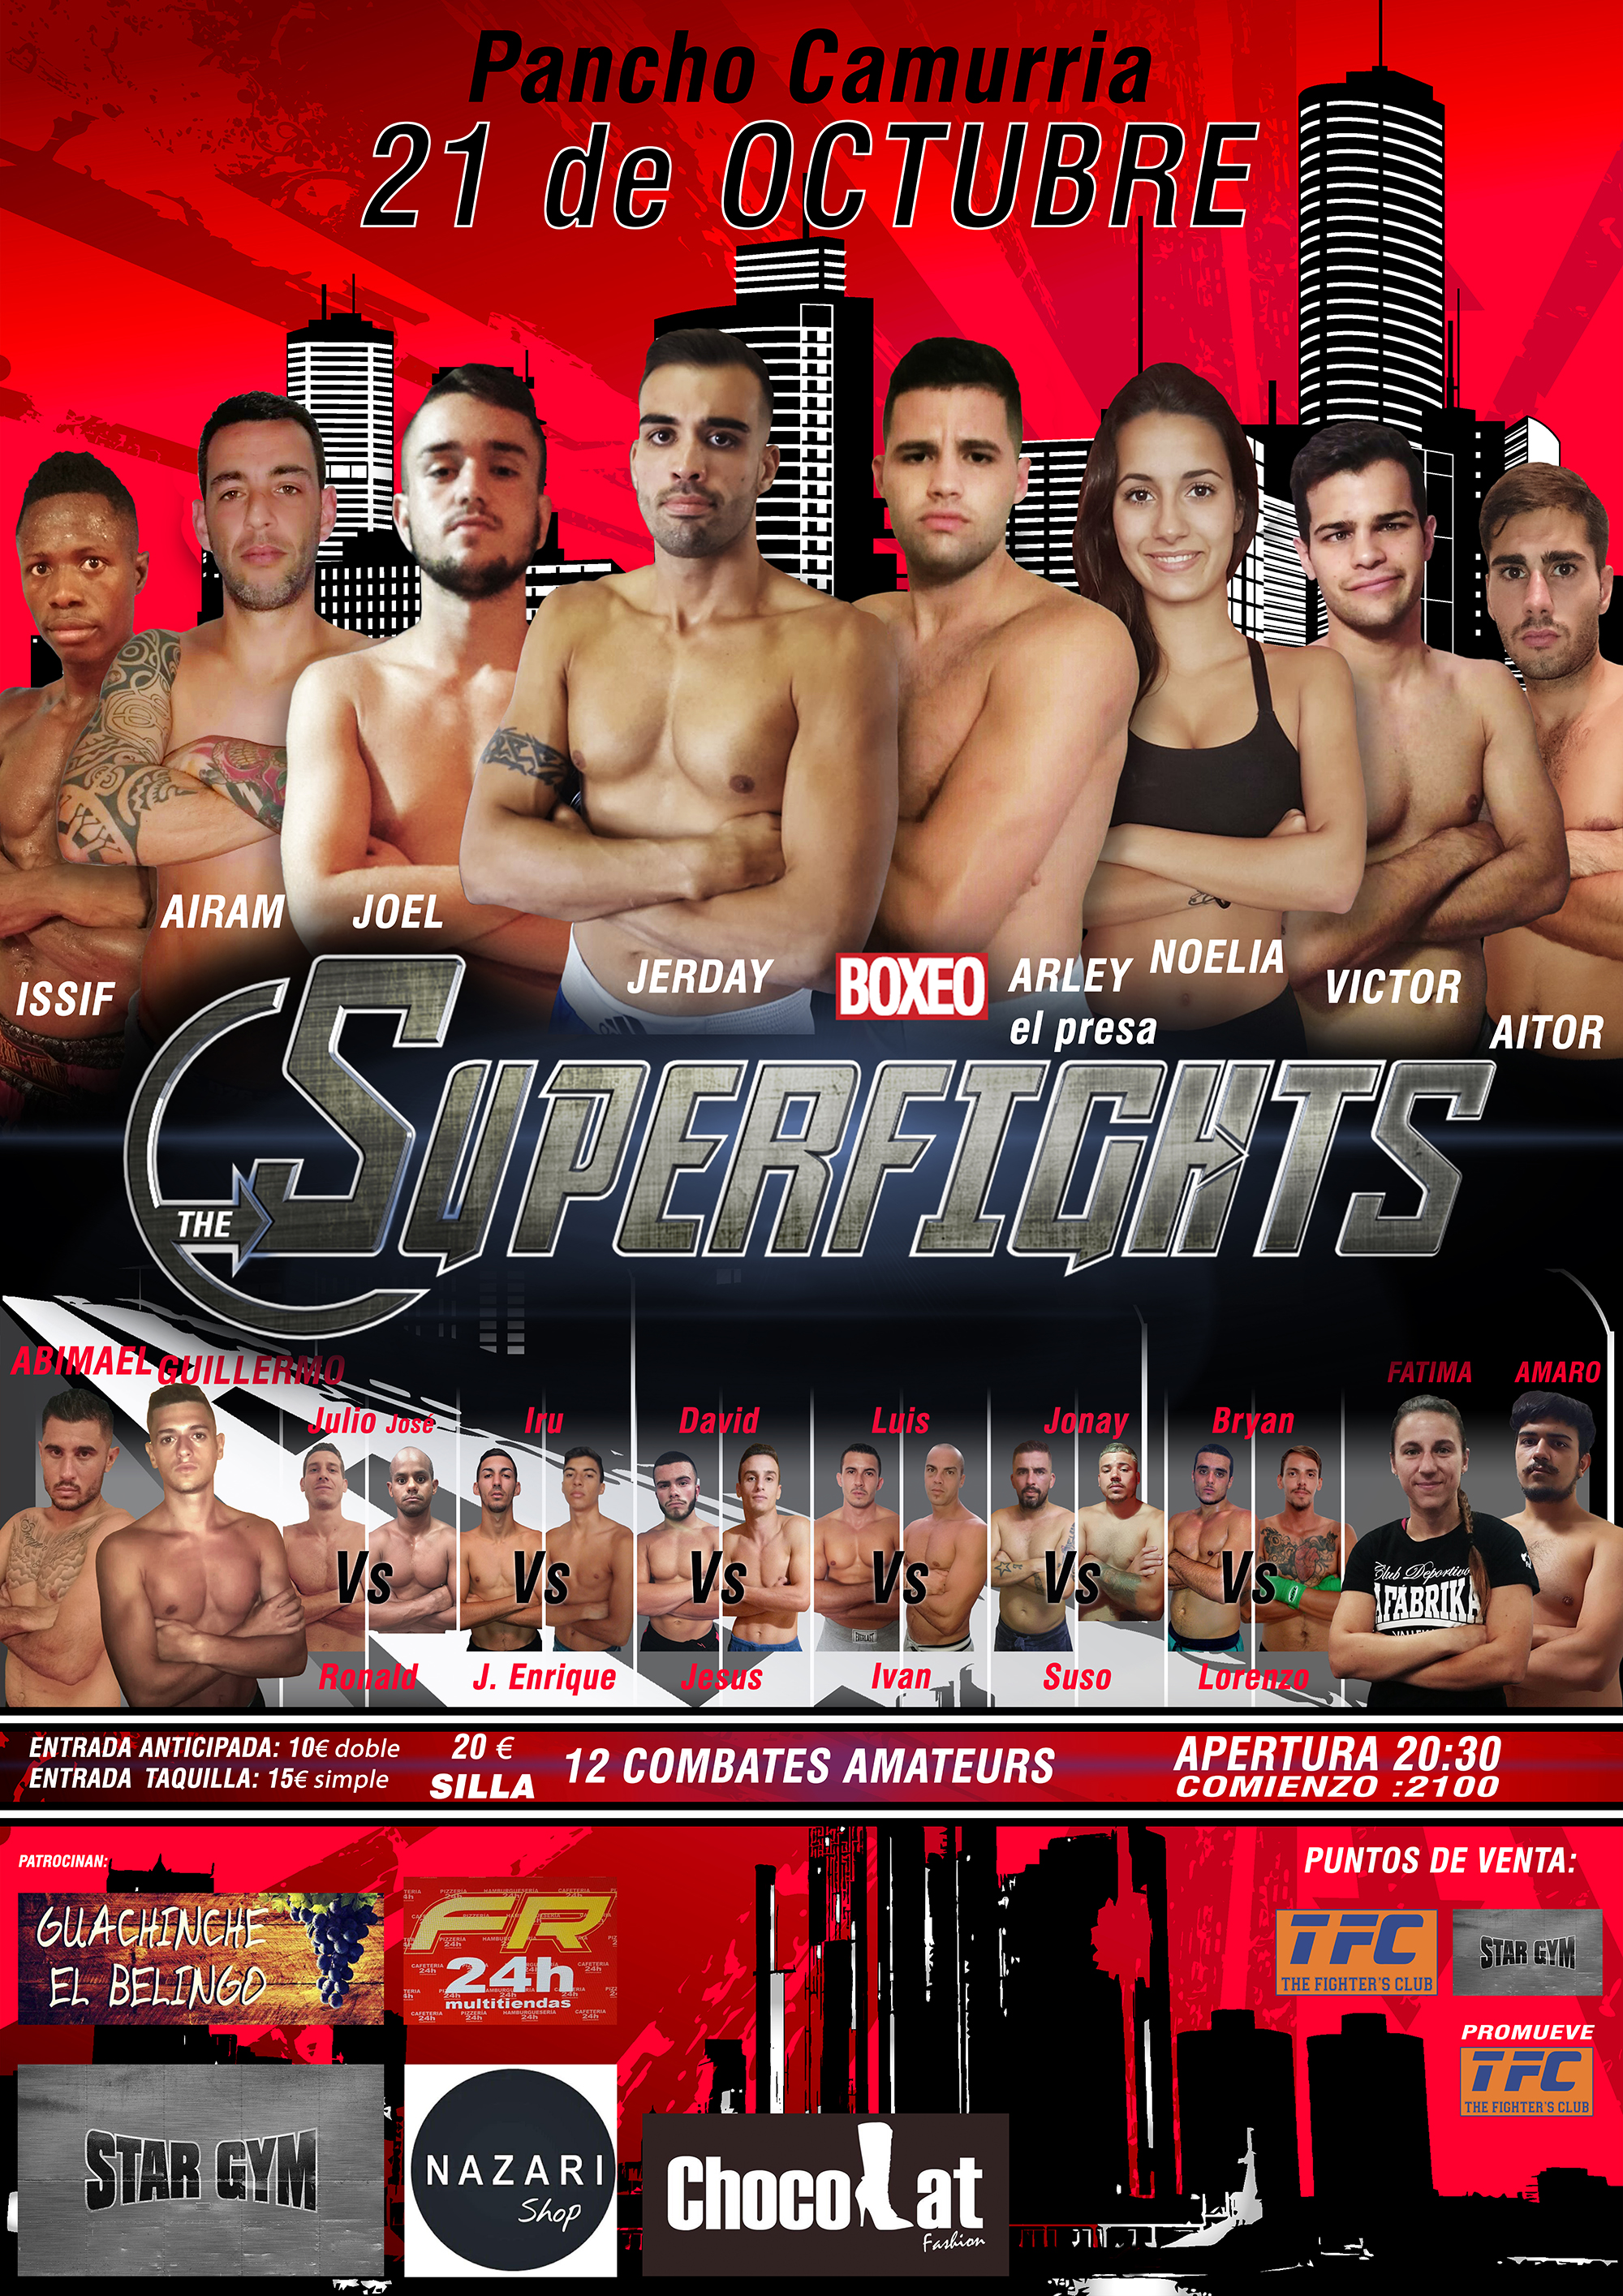 CARTEL SUPERFIGHT prueba movil